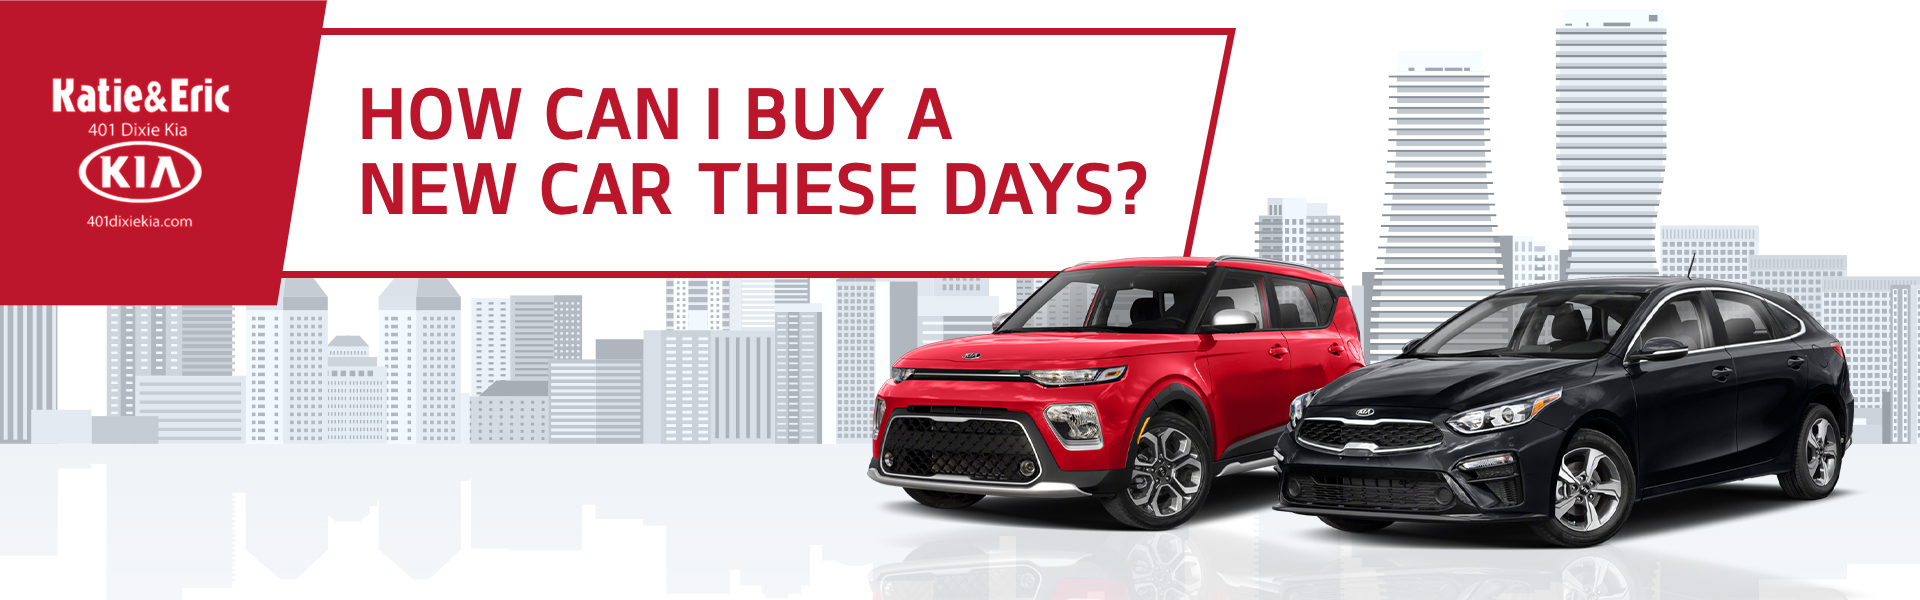 401 Dixie Kia - How can I buy a new car these days?